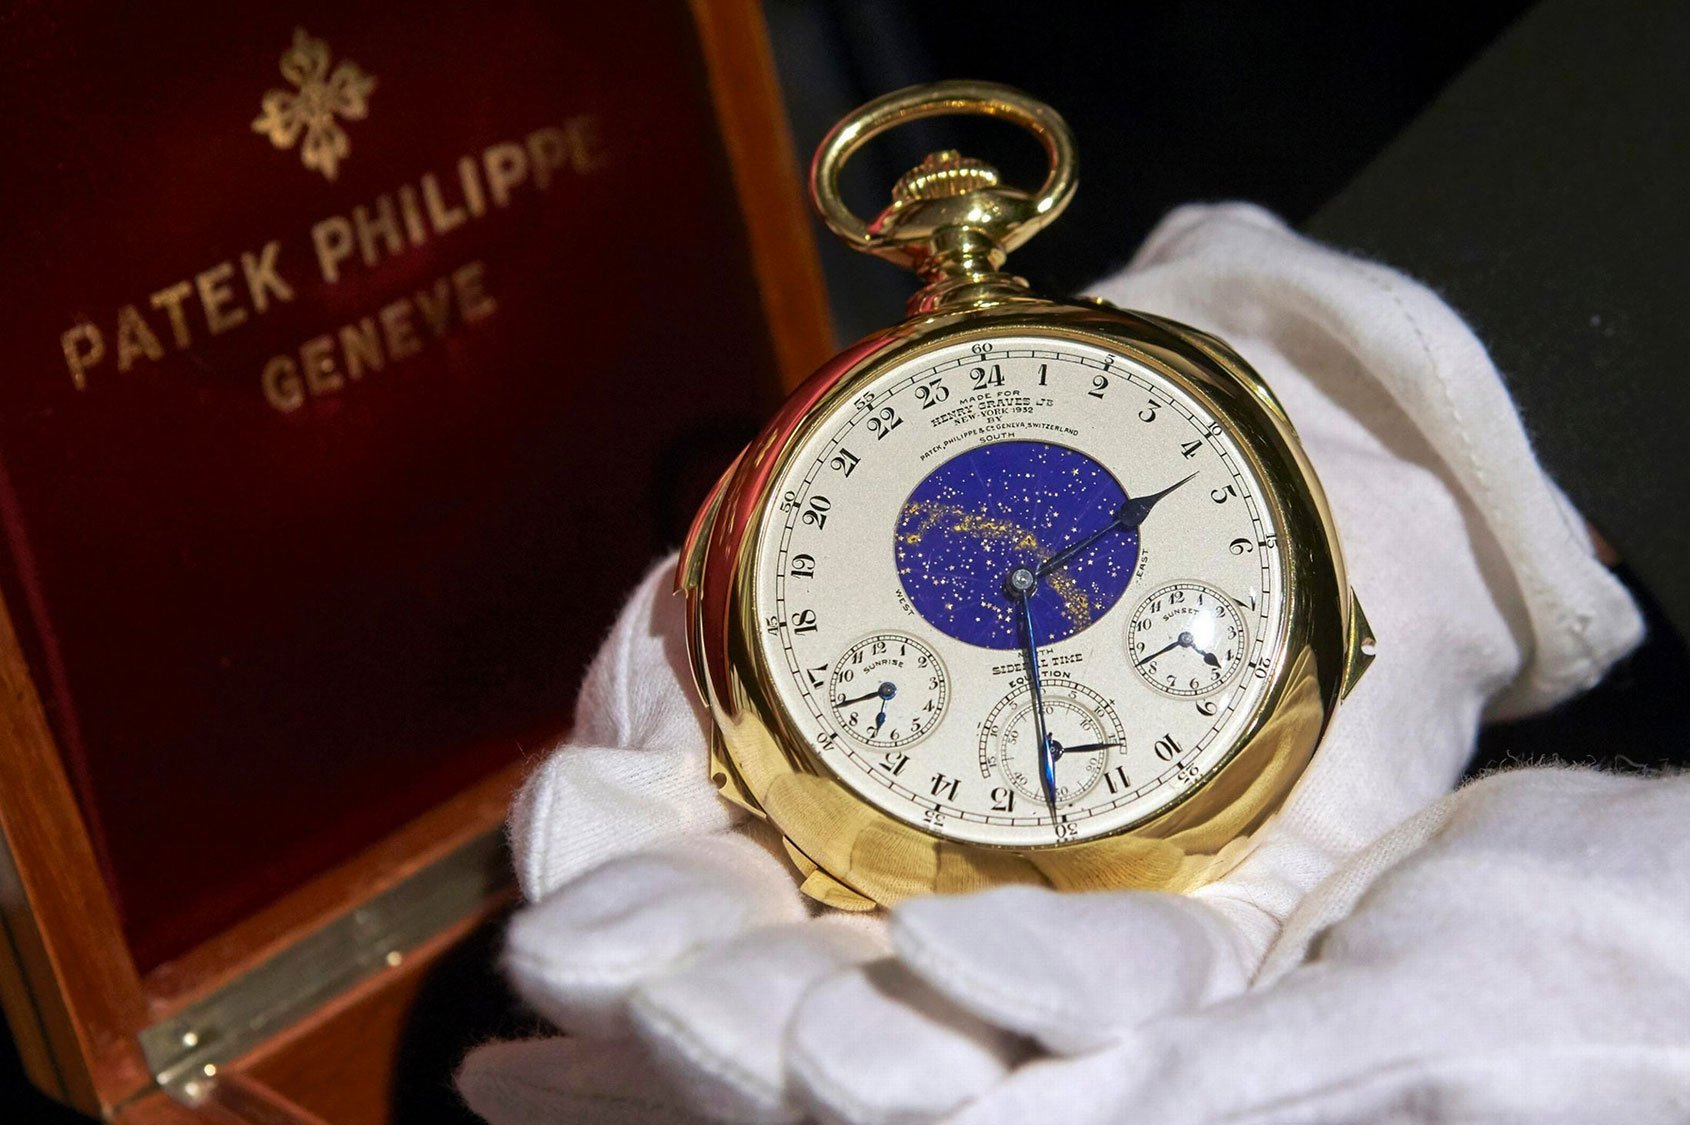 Patek Philippe's Grand Exhibition